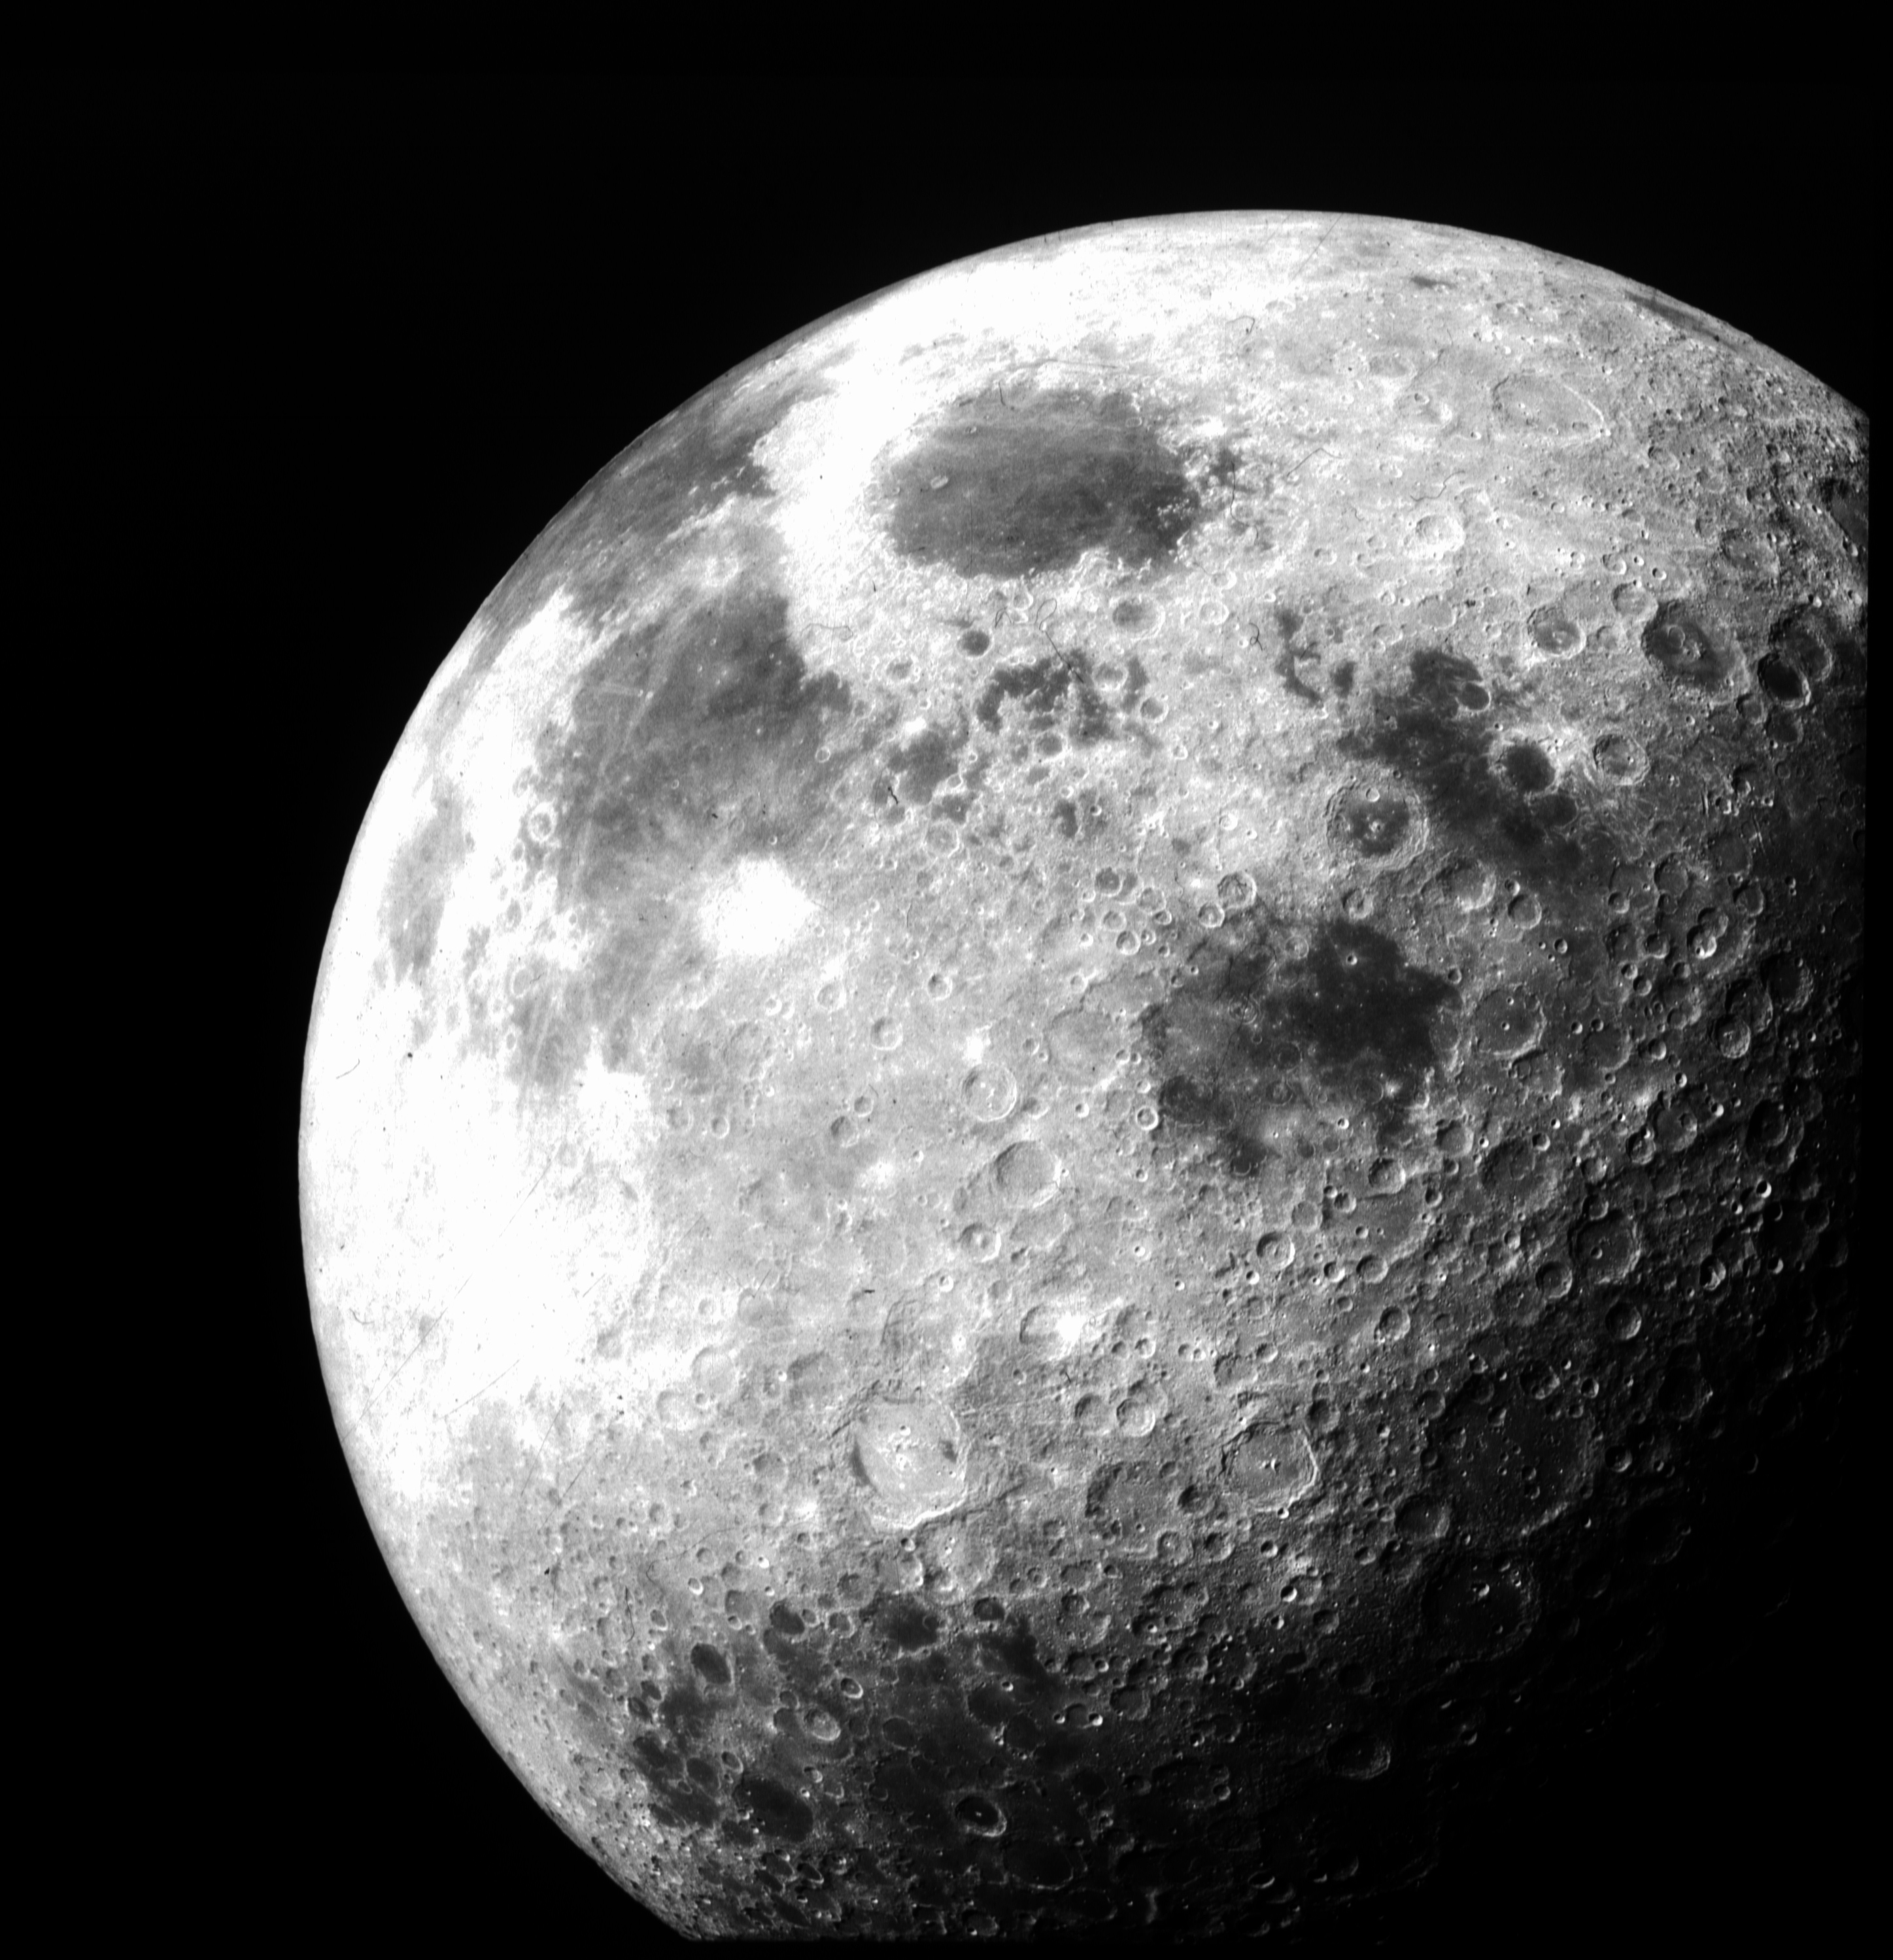 The Moon, courtesy of NASA